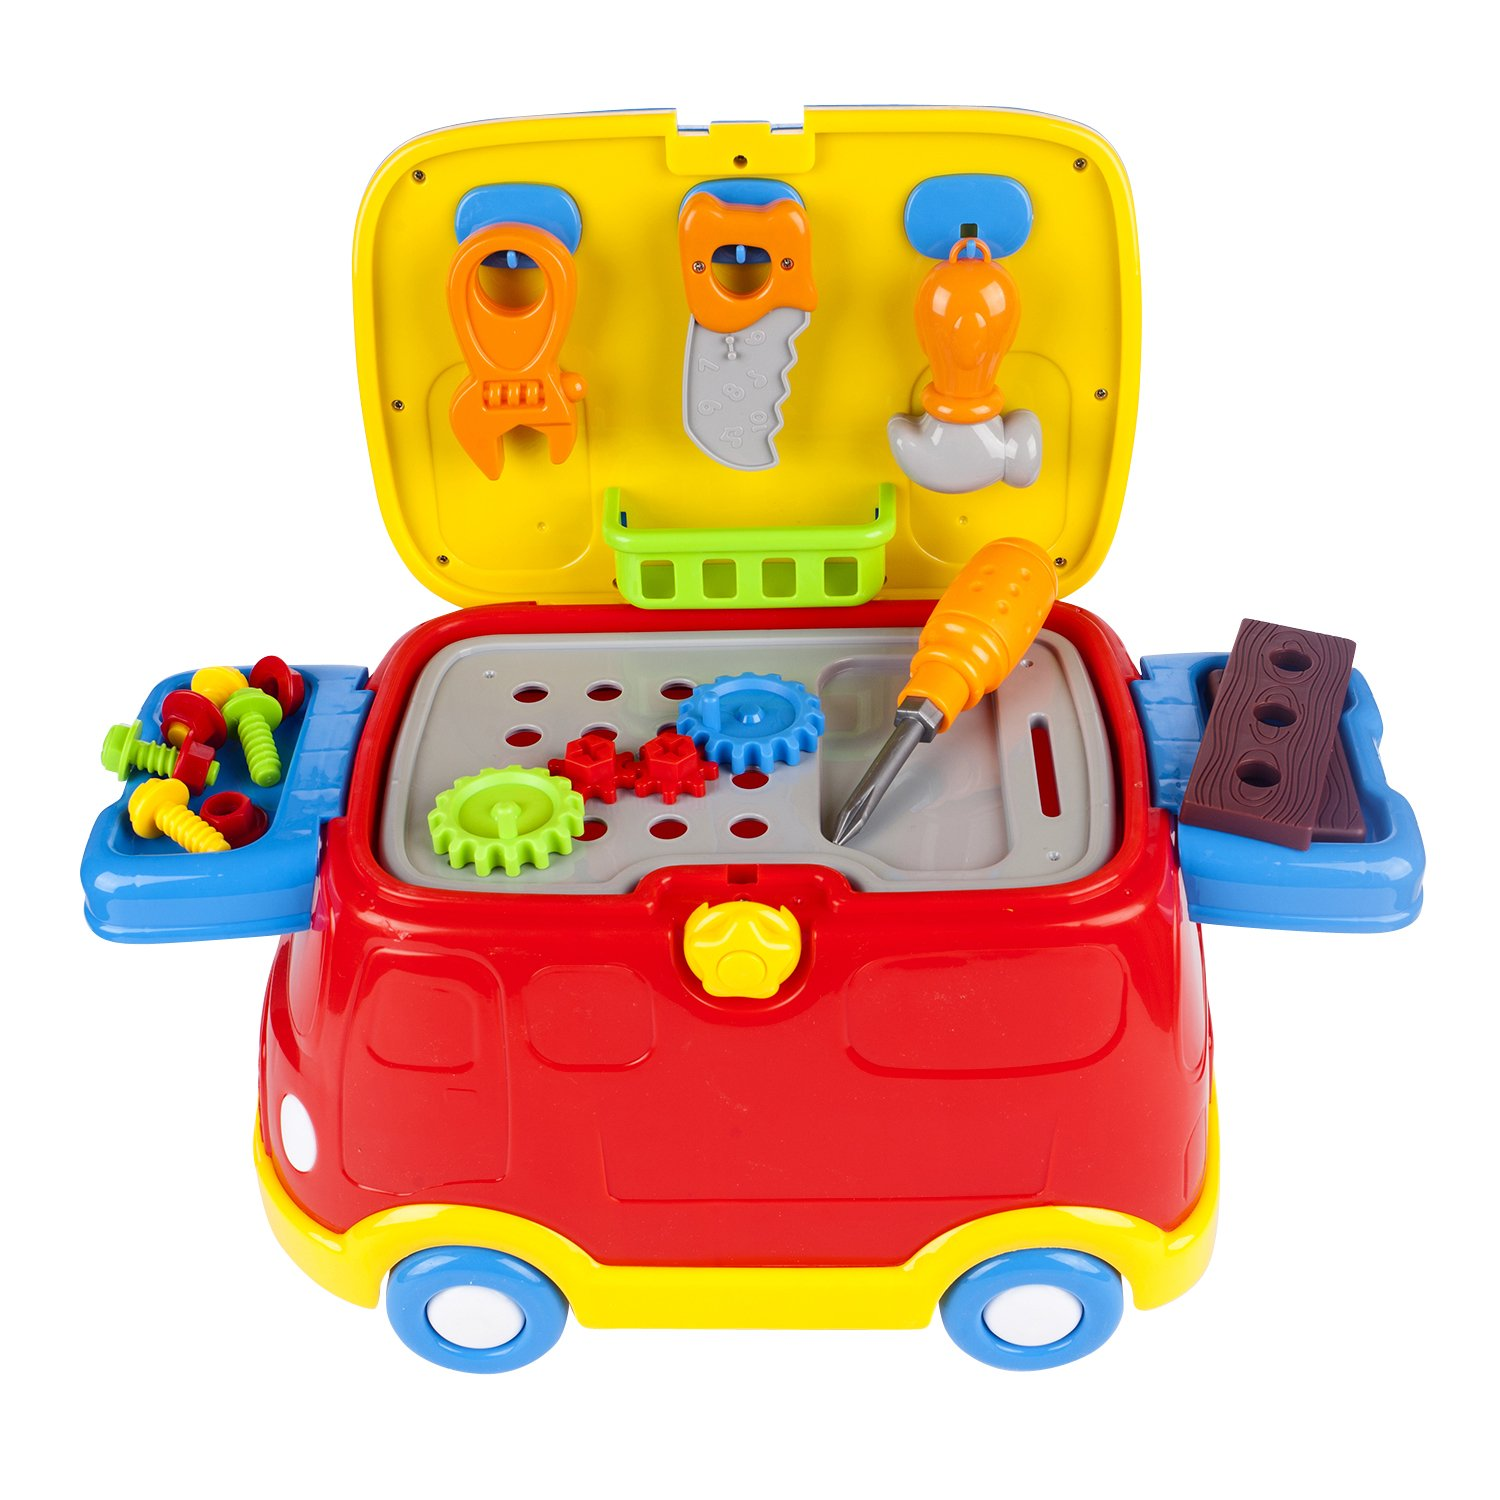 Safe Educational Learning DIY Tool Bus Tools Workbench Toy Set with Easy Storage with Accessories and Free Wheels Purplecart Pretend Play Tool Set Kids Tool Car Ride On Vehicle